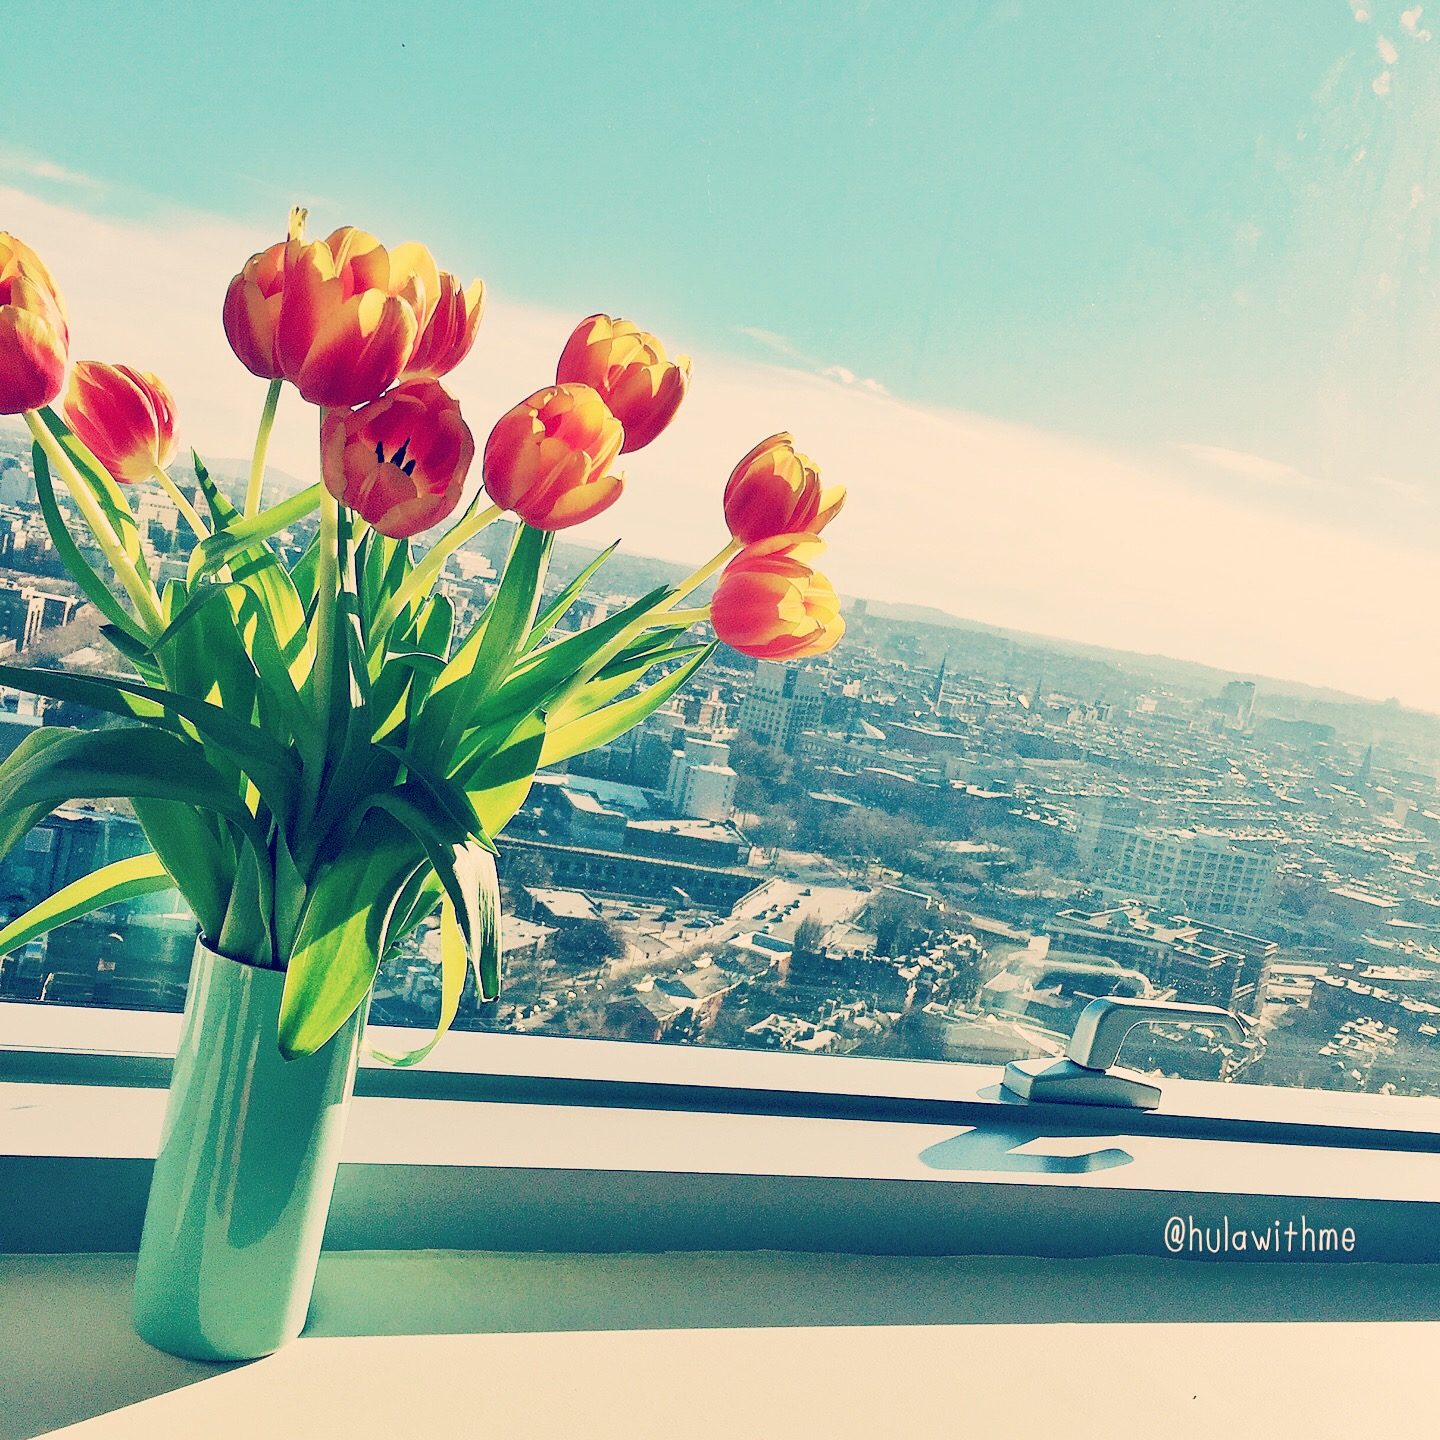 Spring forward...with these lovely tulips.